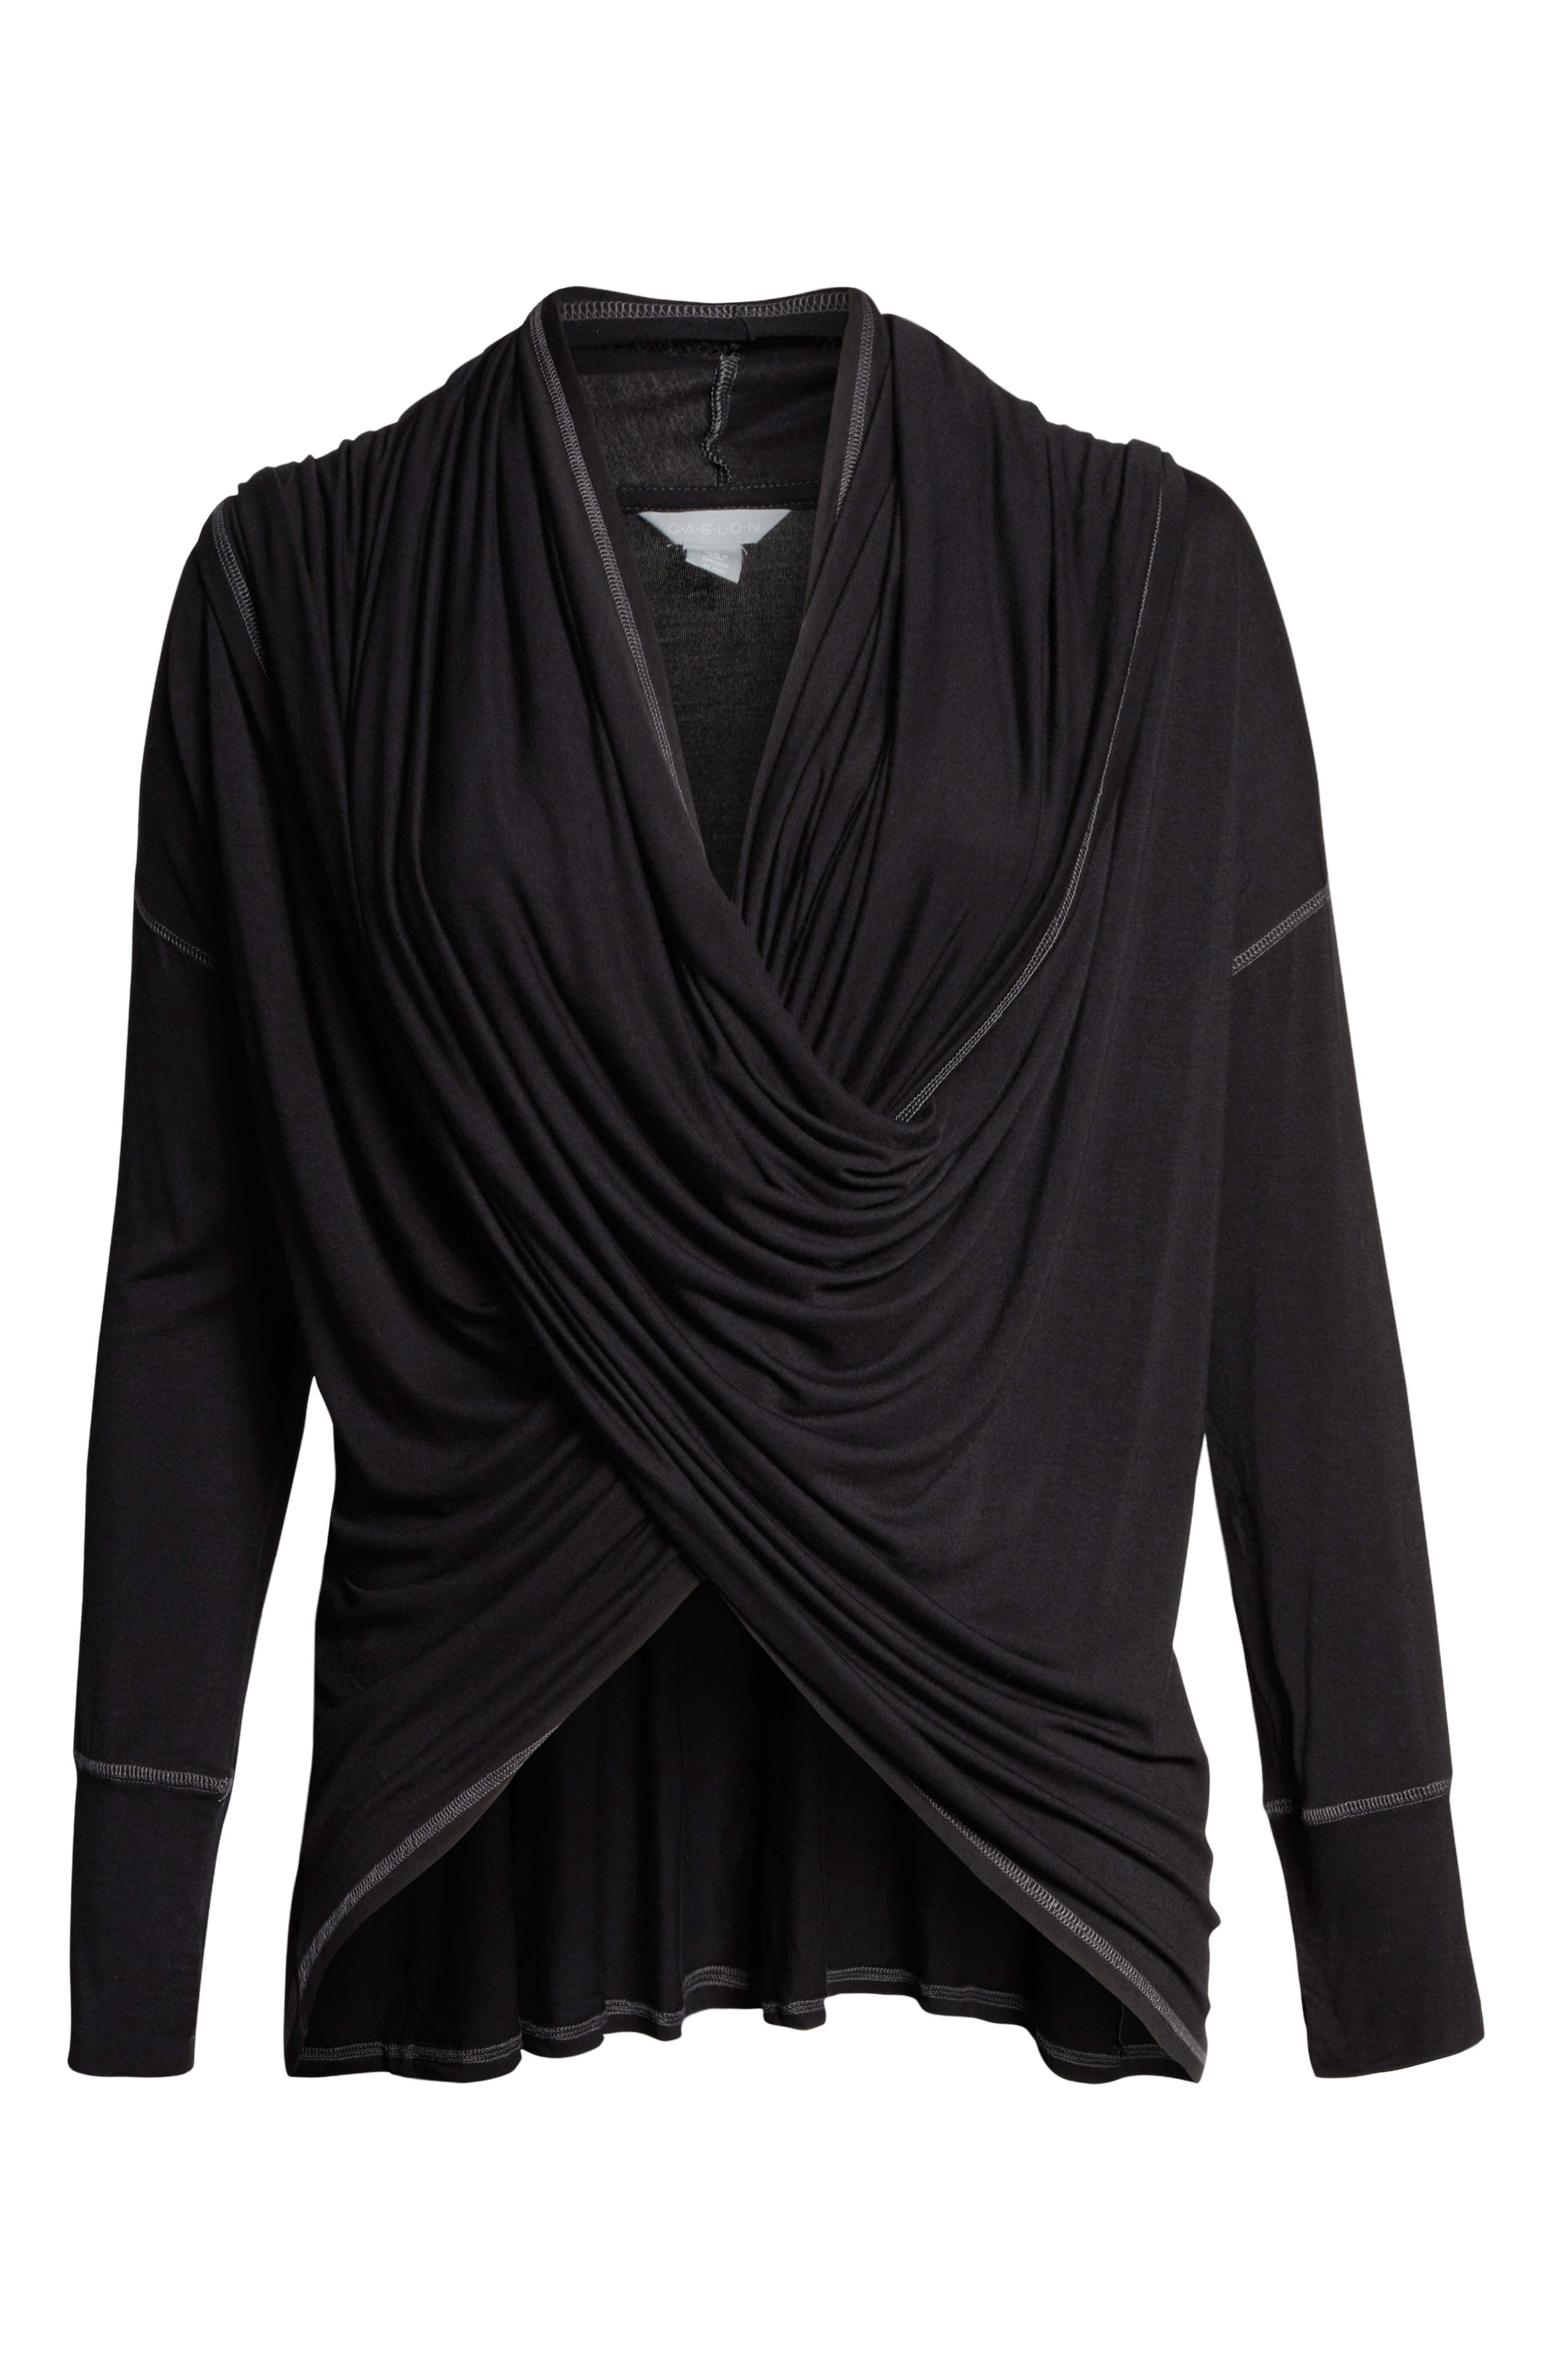 Off-Duty Long Convertible Cardigan,                             Alternate thumbnail 12, color,                             001